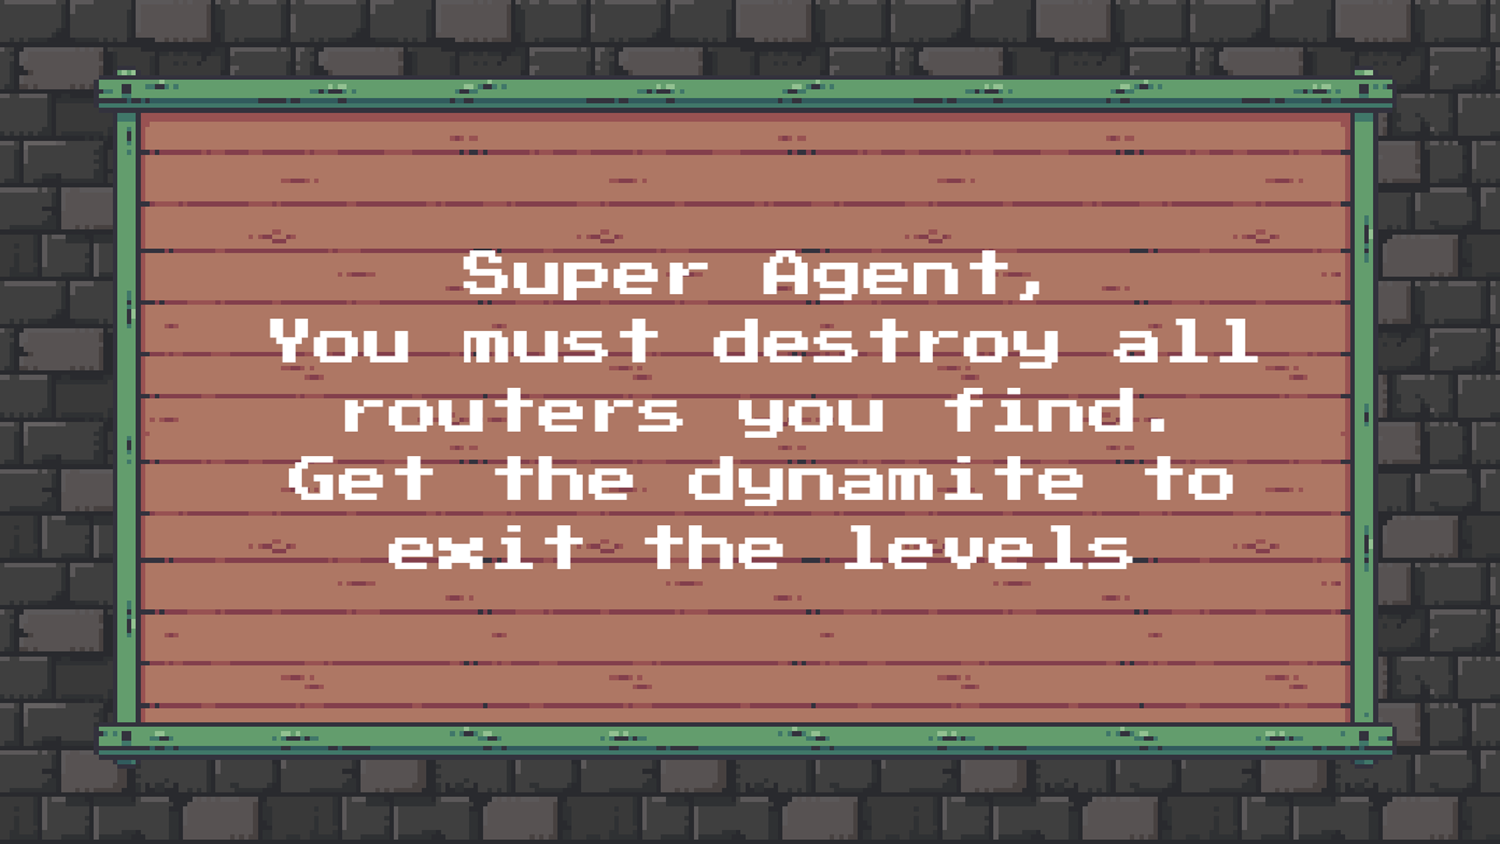 Super Agent Game How To Play Screenshot.